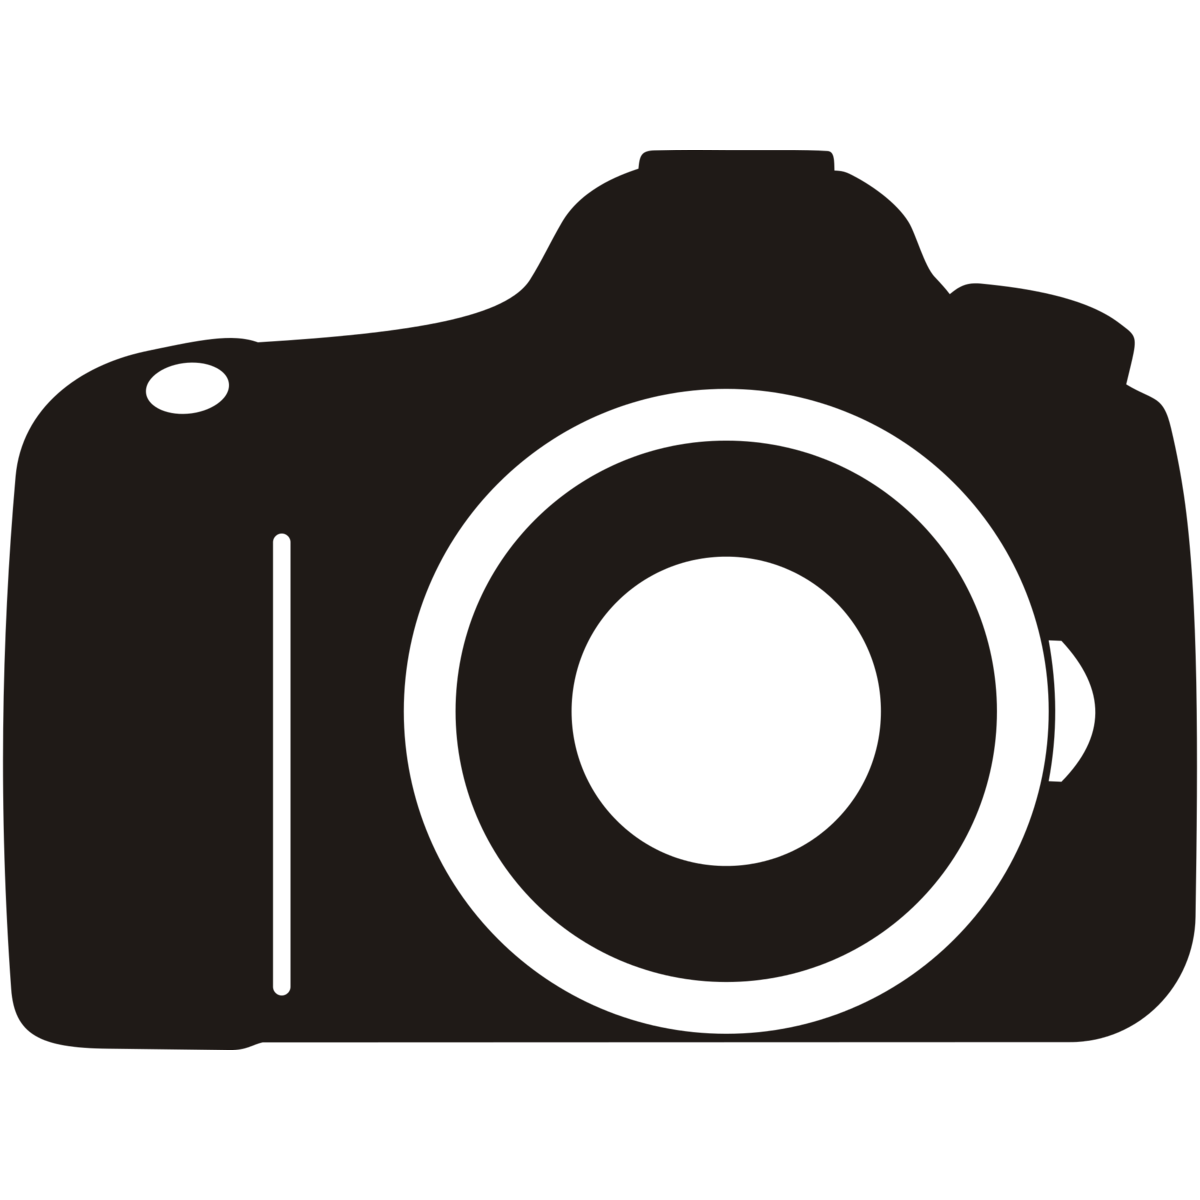 Vintage Camera Png Icon Camera Png Image #2390 - Photography, Transparent background PNG HD thumbnail